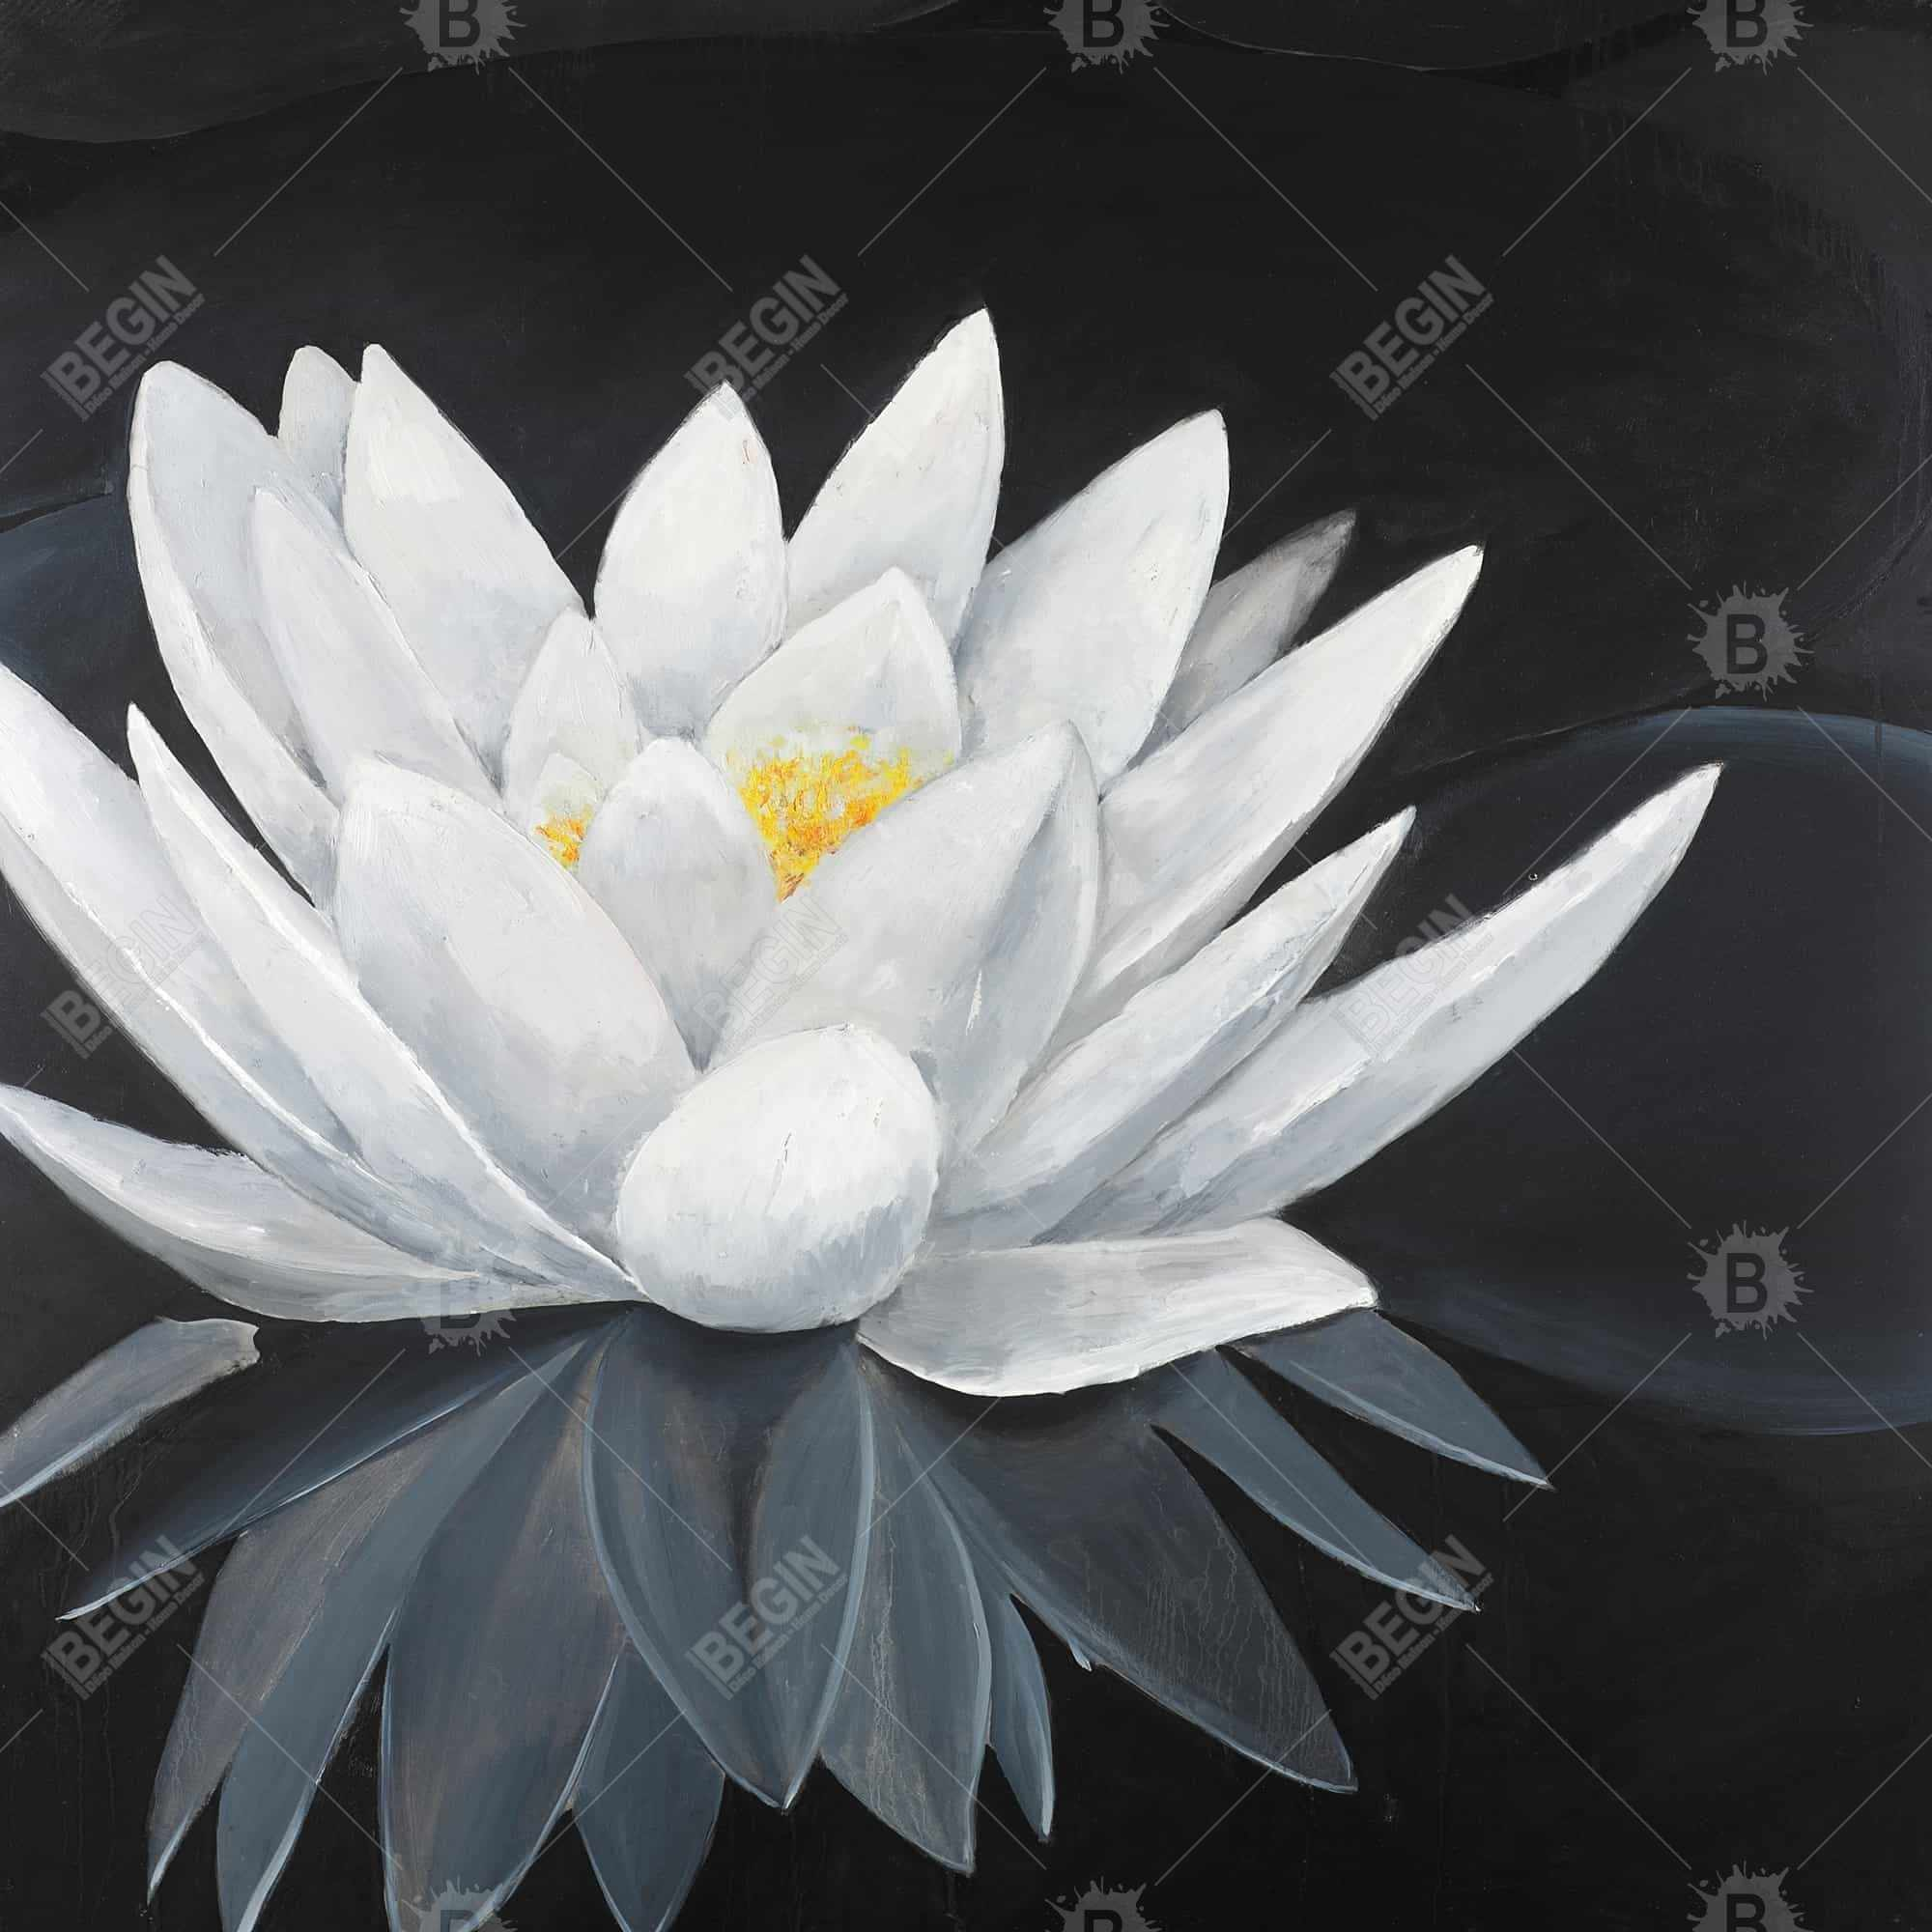 Lotus flower with reflection